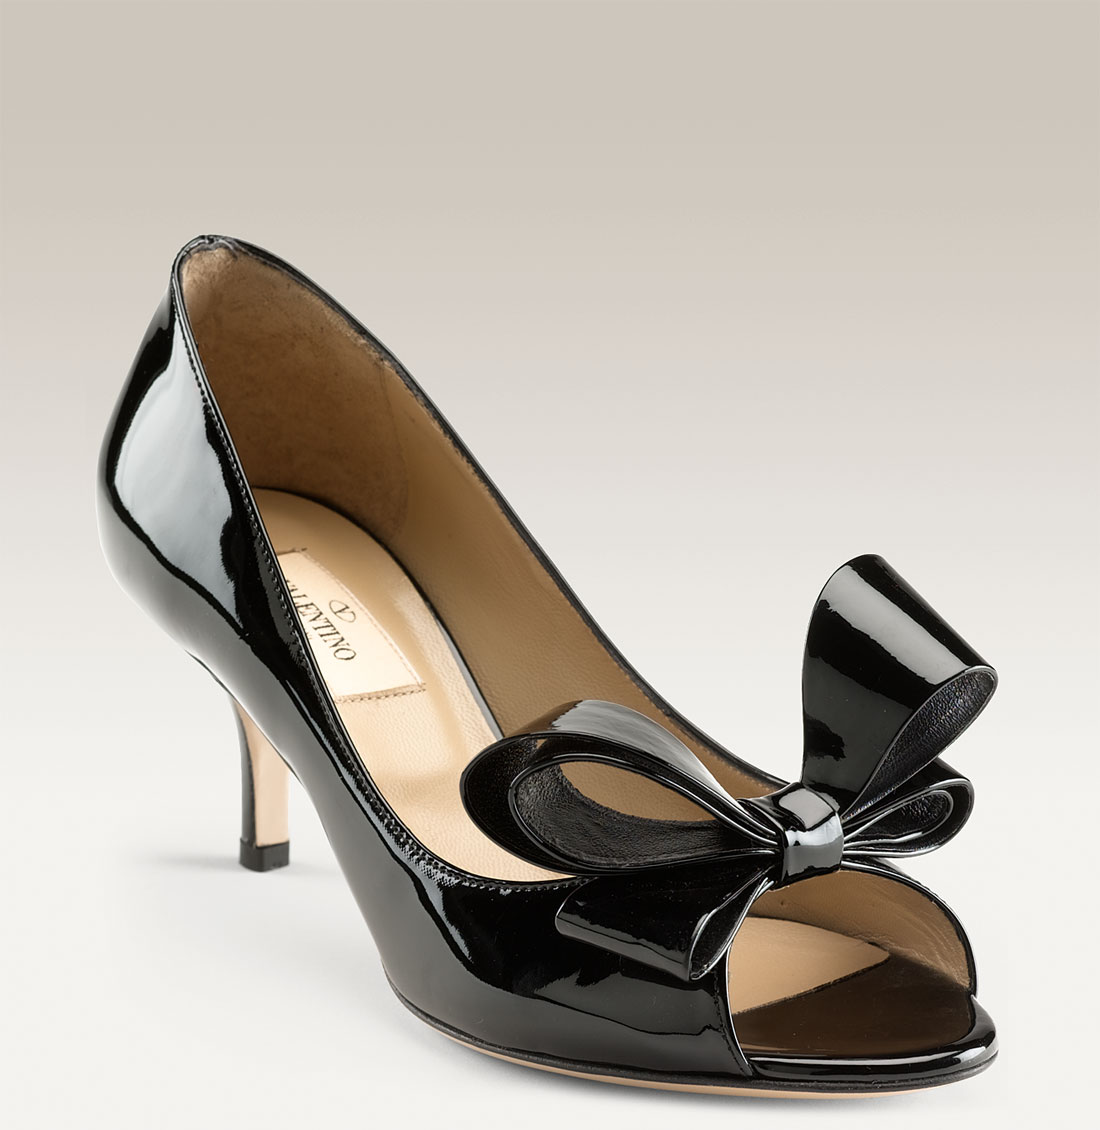 Valentino Garavani Rockstud Pointy Toe Pump | Best Pumps ...